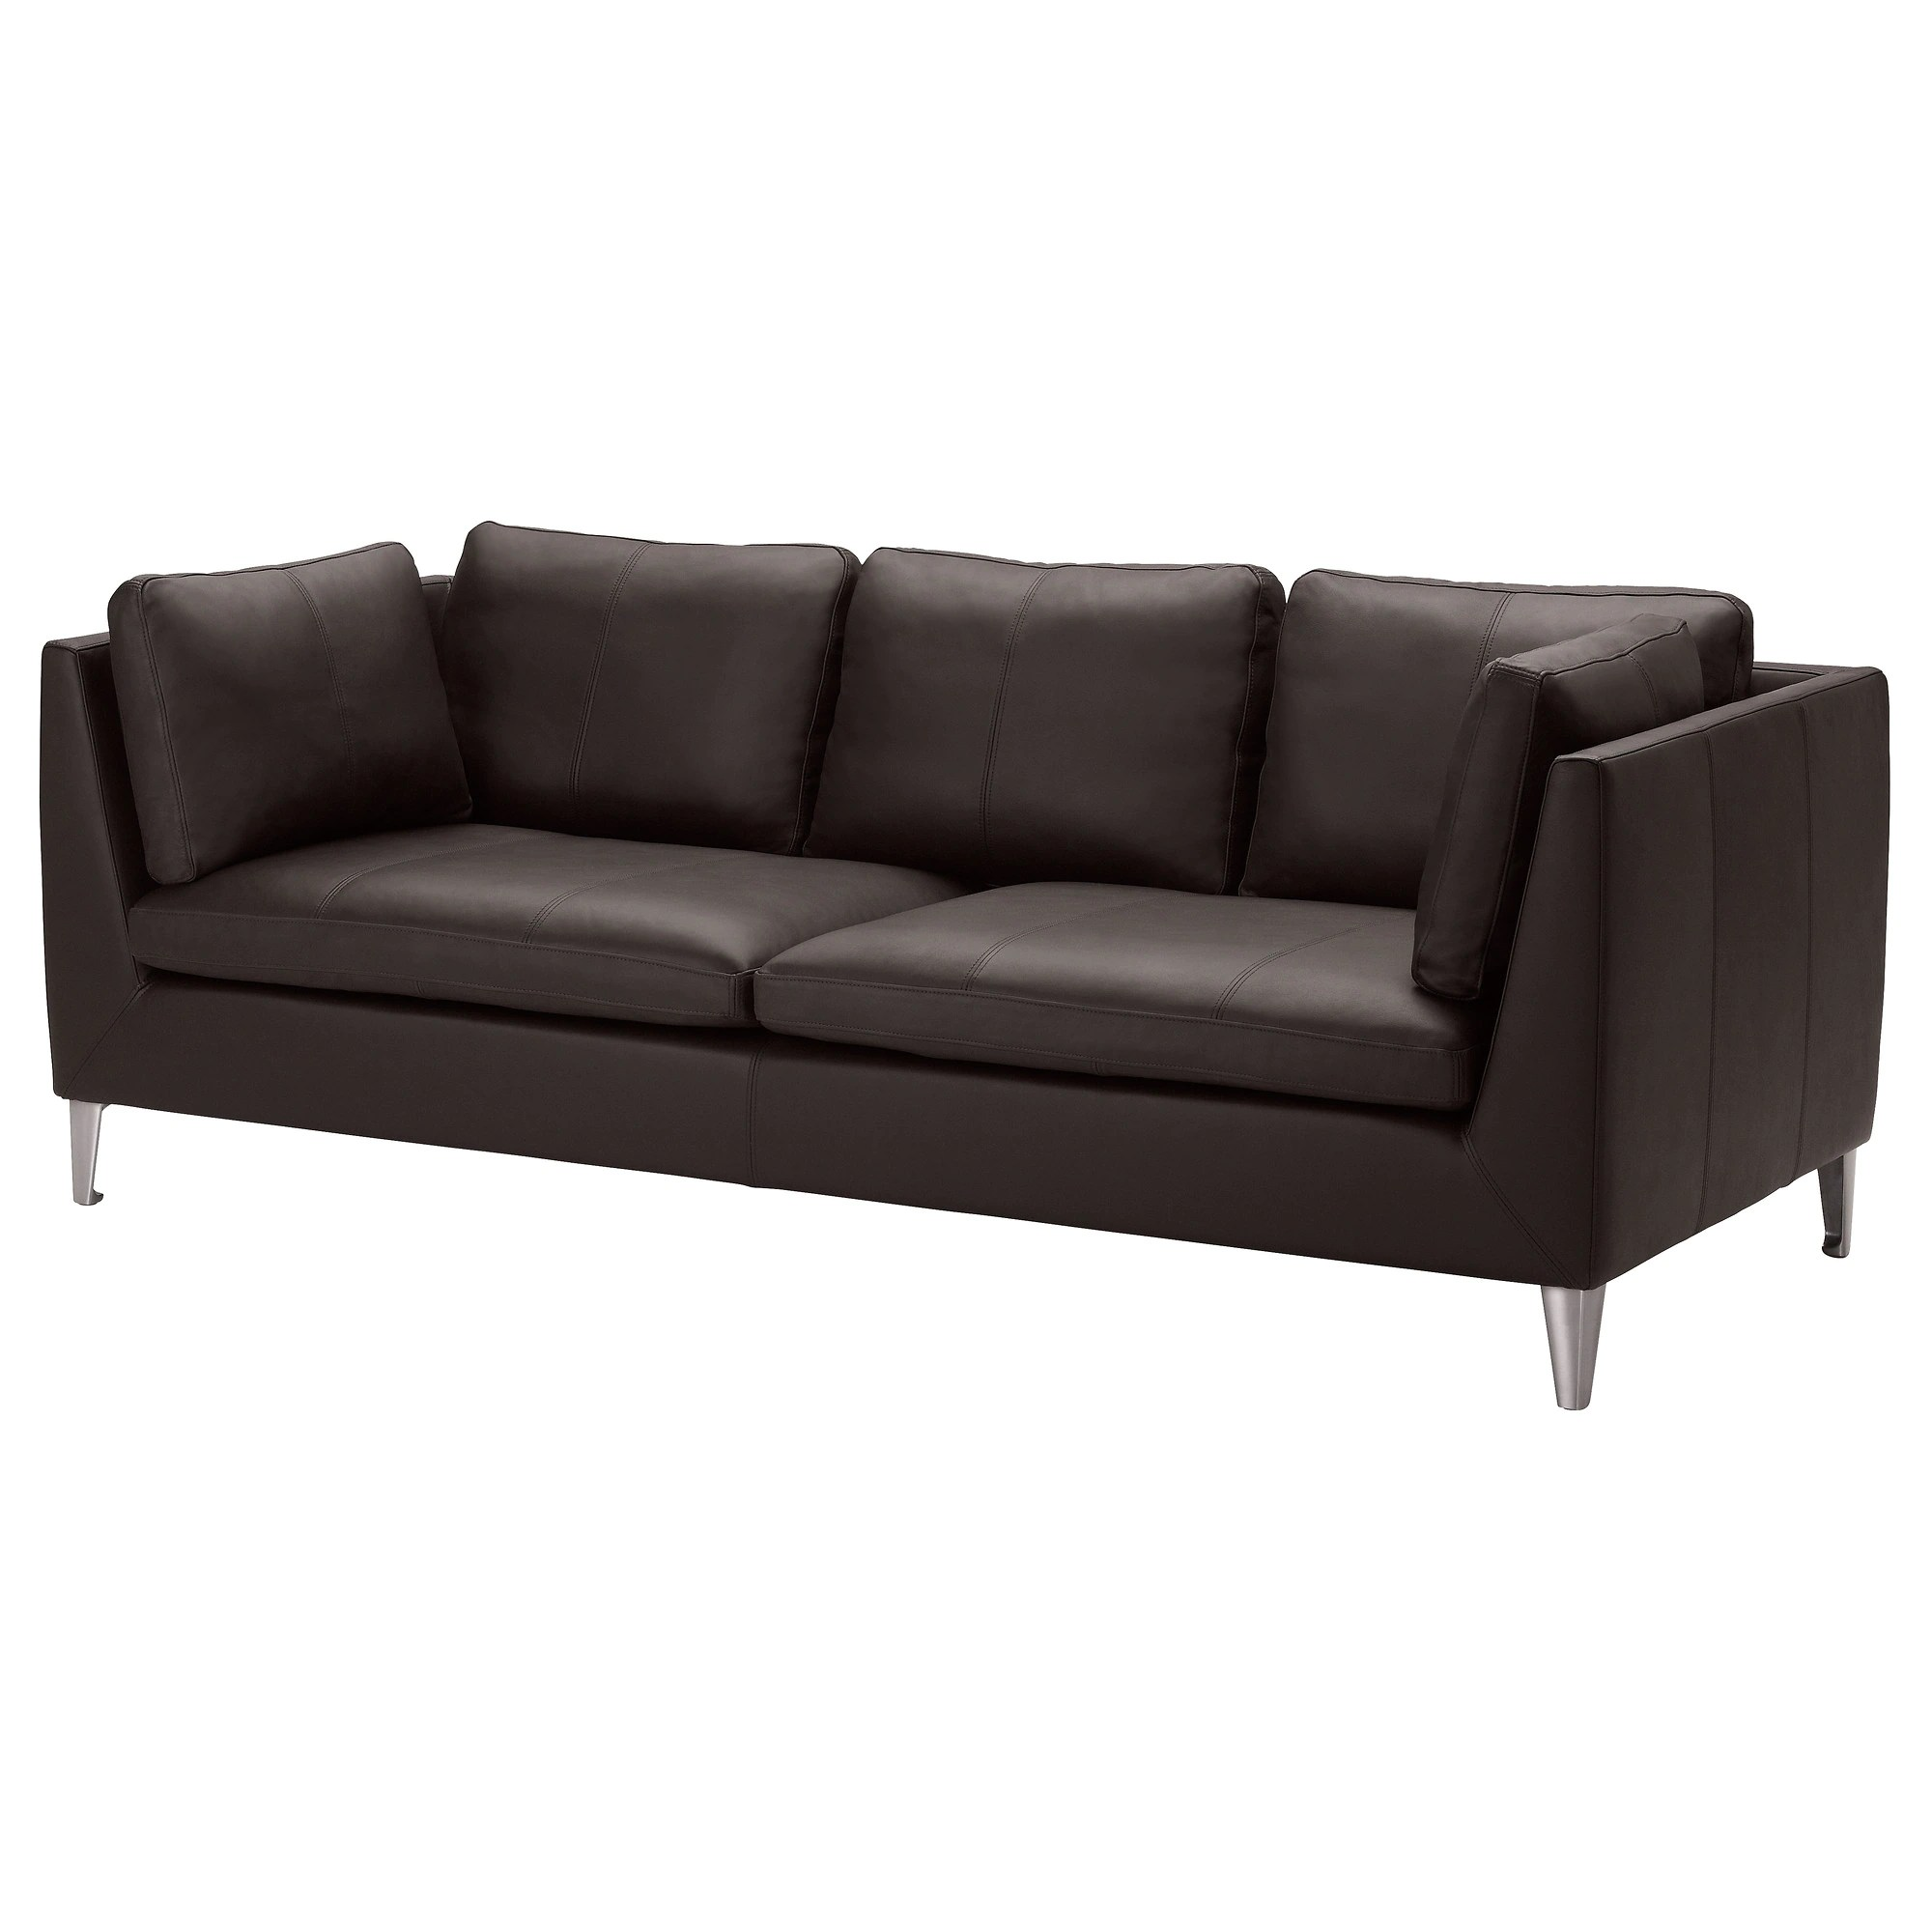 Ikea Ledersofa Ebay Kleinanzeigen Ikea Stockholm Sofa For Sale Best Interior Furniture